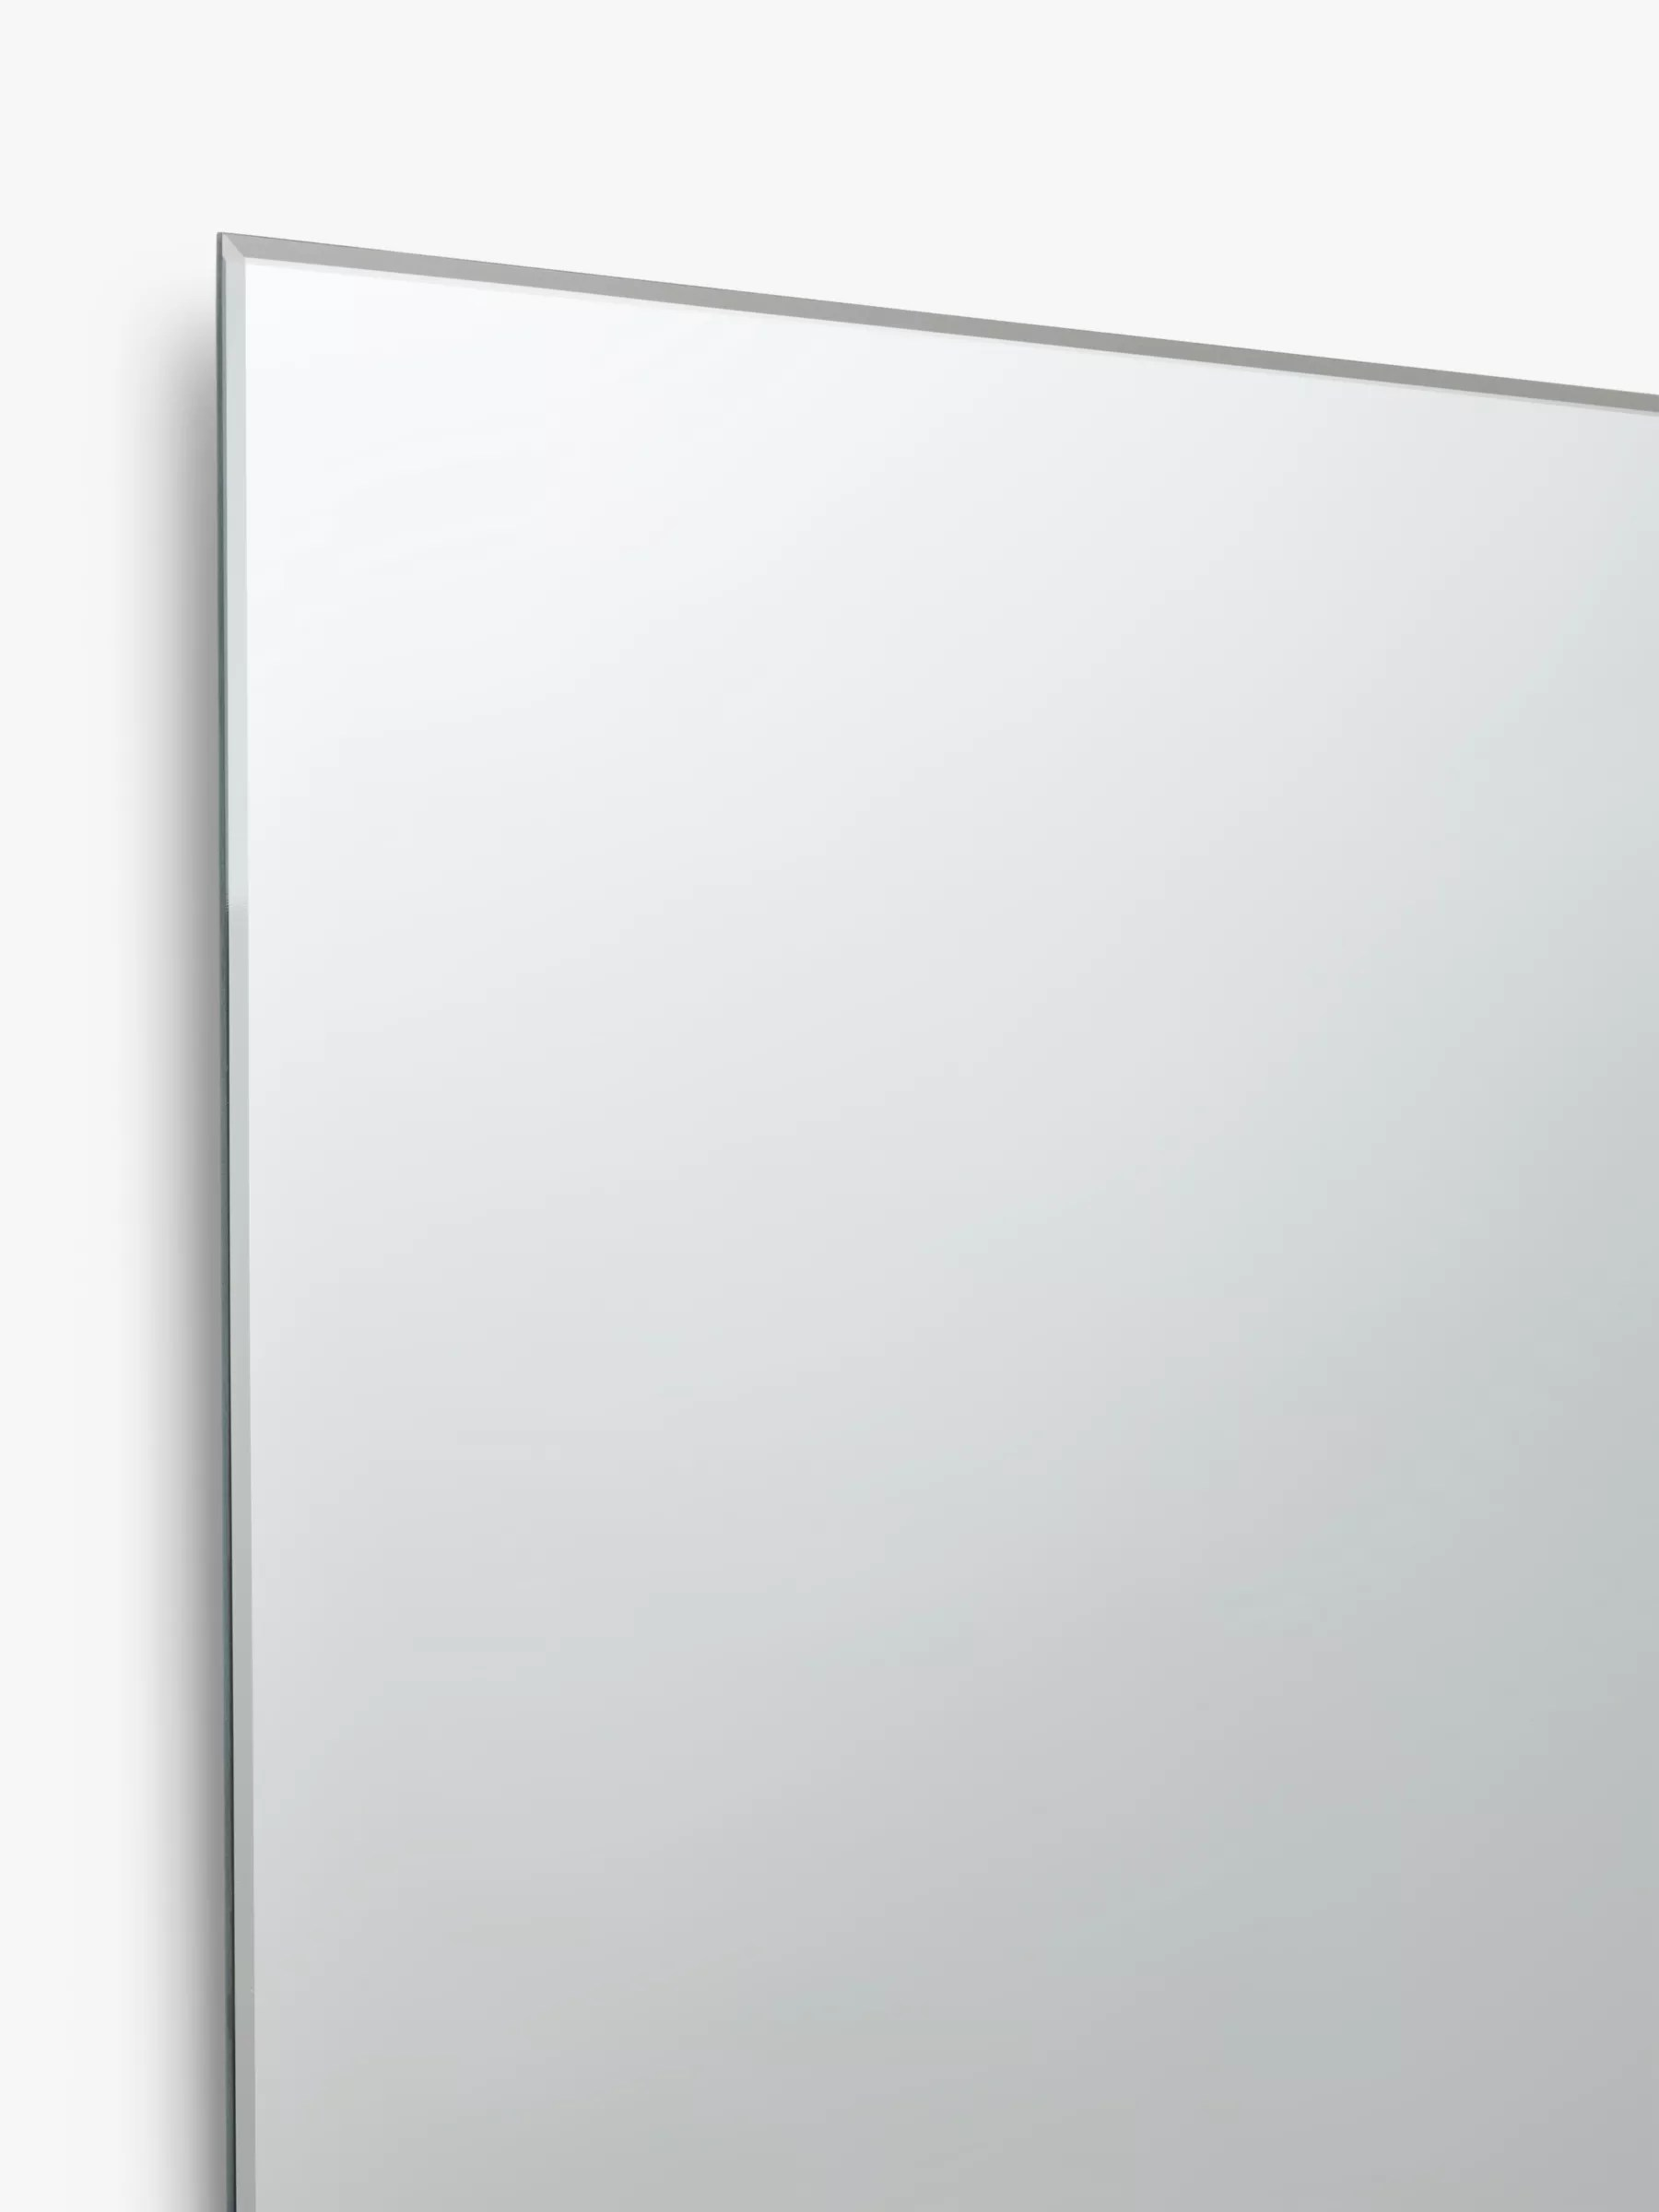 Mirrored Bathroom Cupboard John Lewis And Partners Double Mirrored Bathroom Cabinet